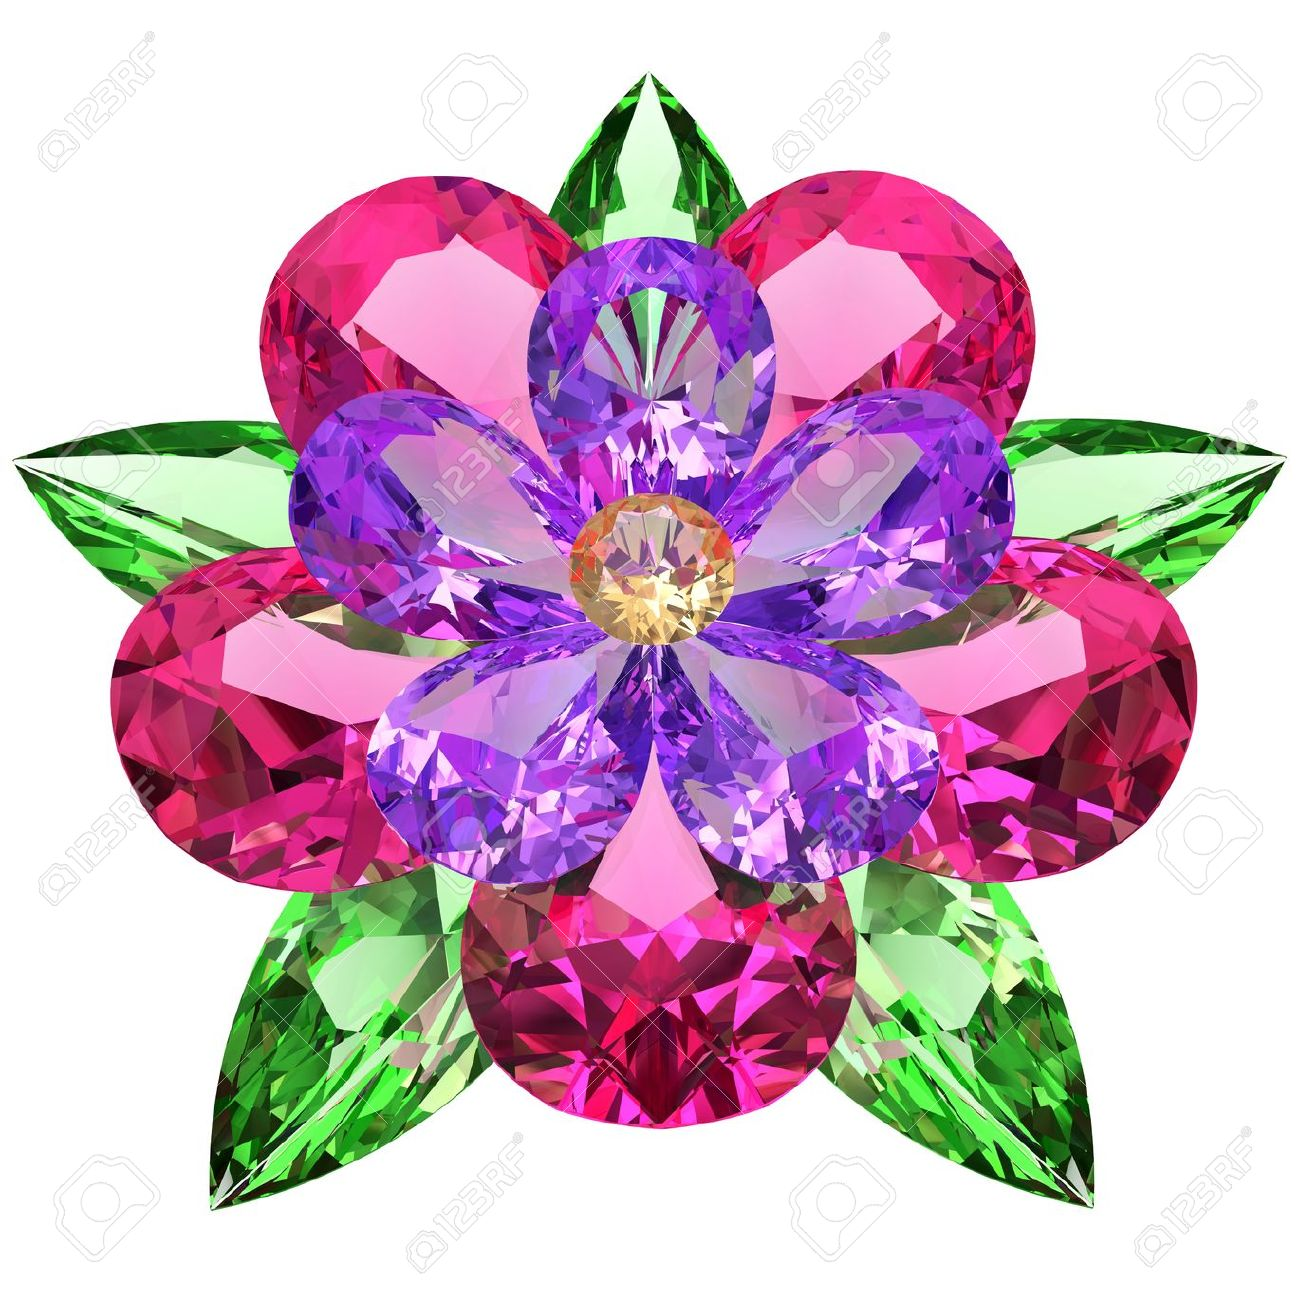 Flower Composed Of Colored Gemstones On White Background High ...